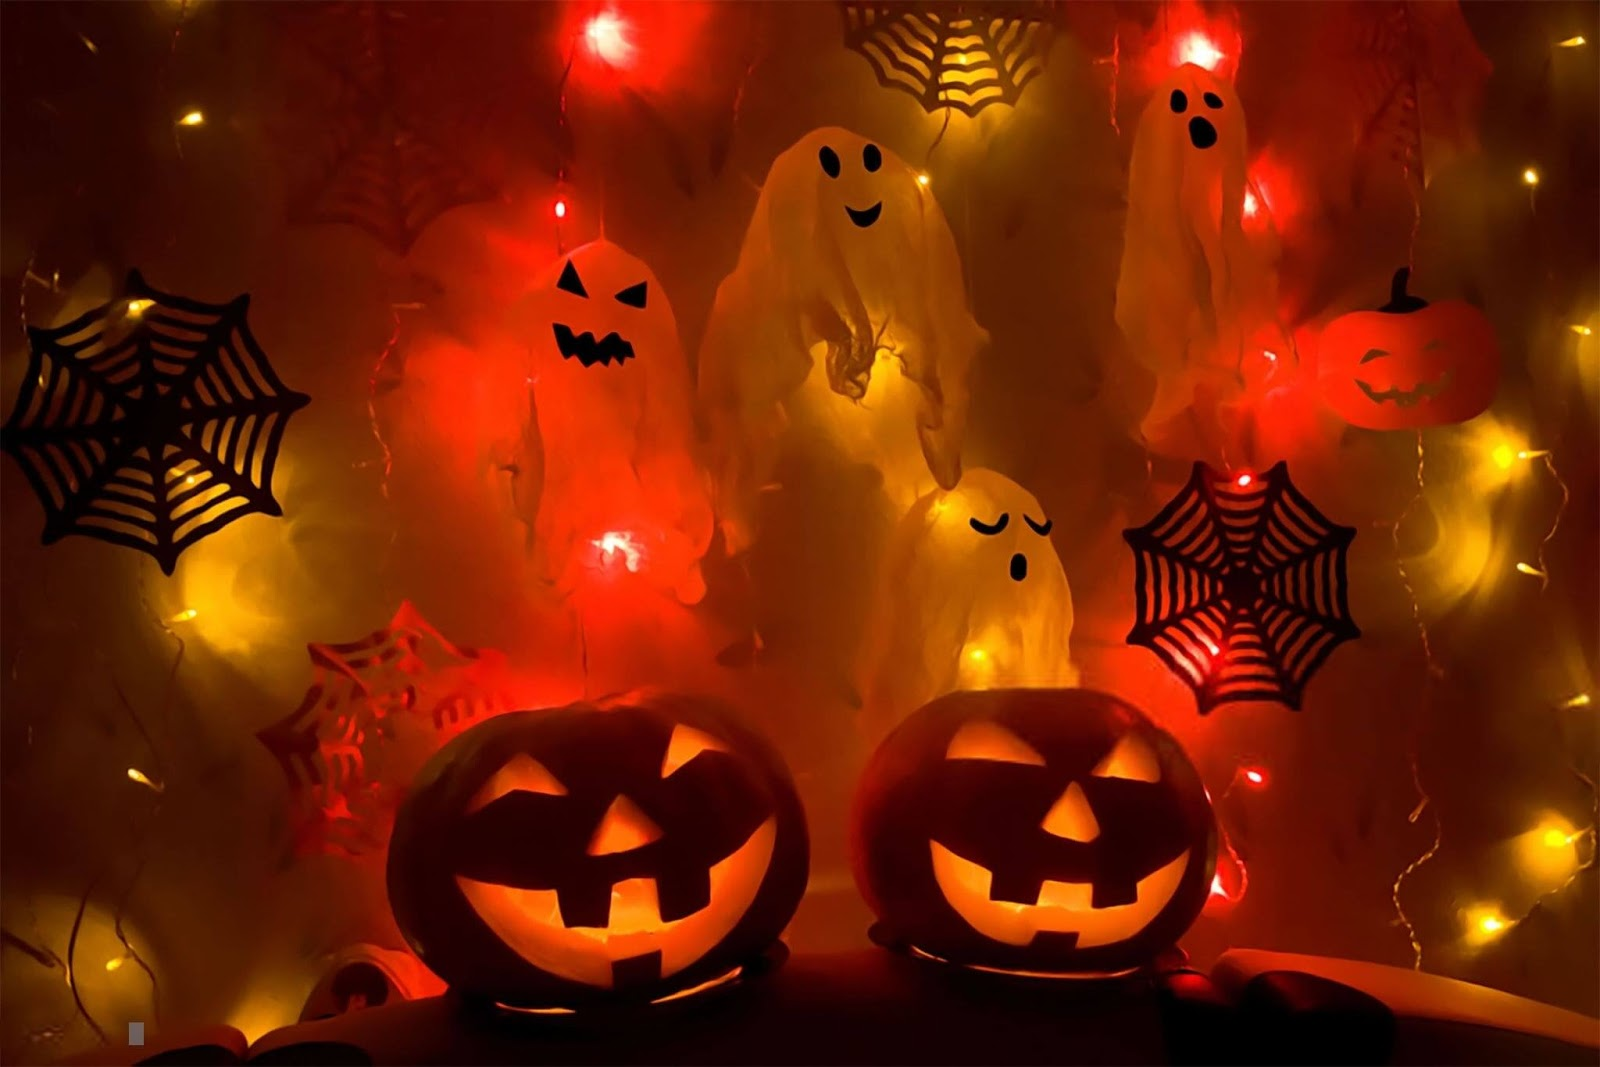 Images of Halloween Pumpkins